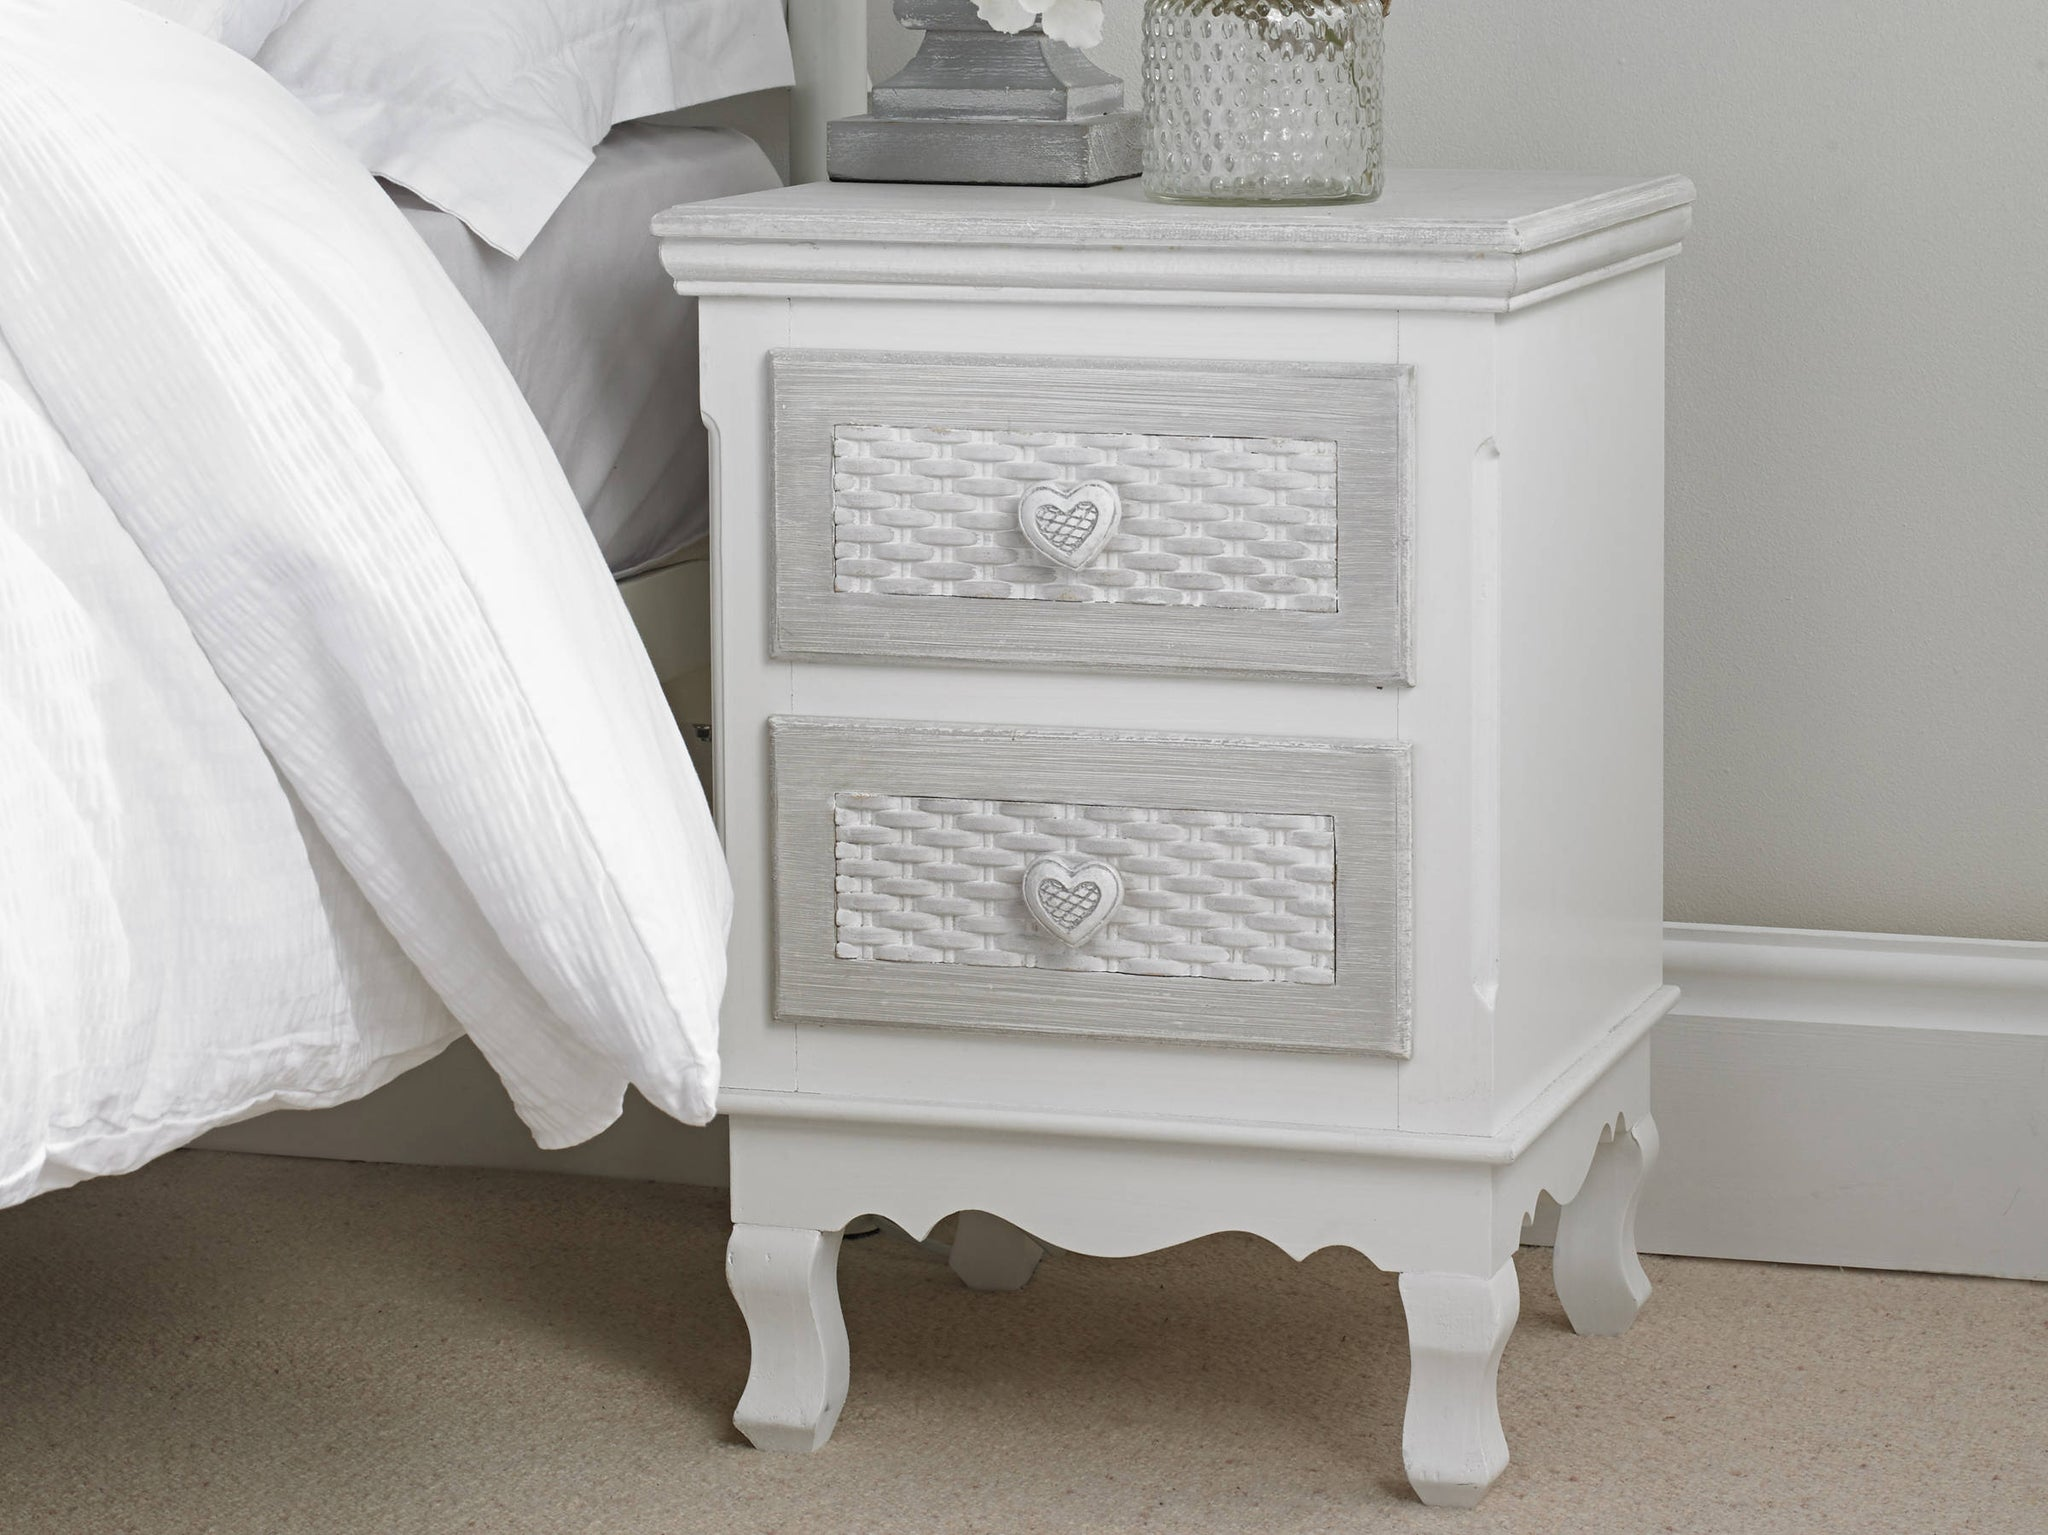 Lorient 2 Drawer Bedside Cabinet - Ezzo